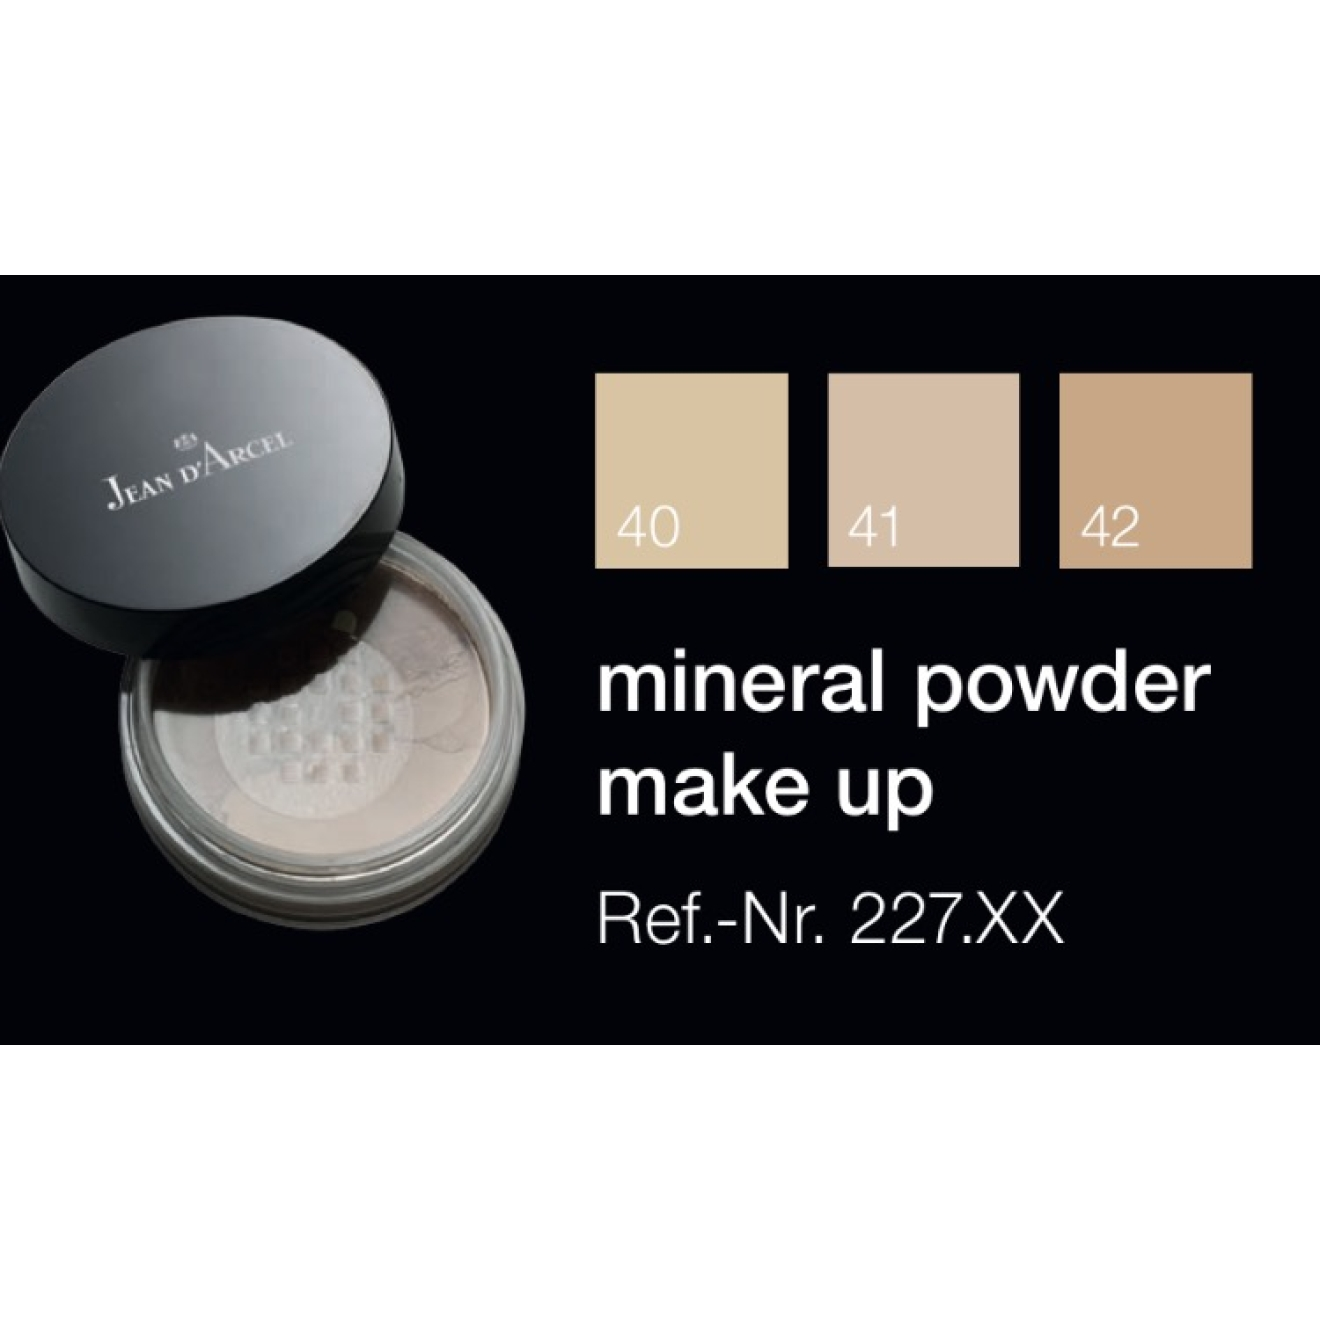 Jean D'Arcel - Brillant Mineral Powder Make Up No. 41